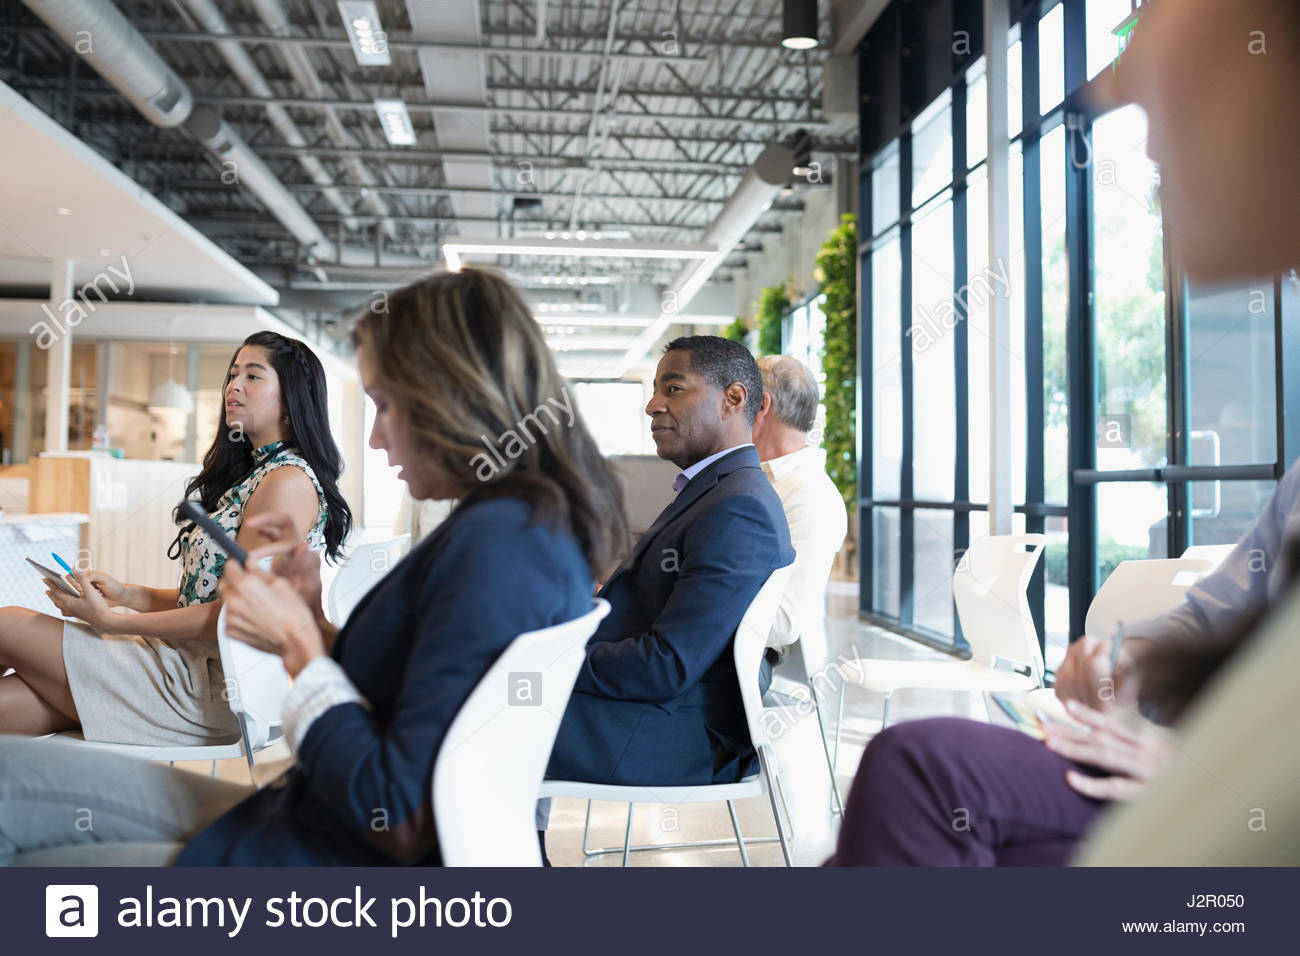 Business people listening in conference audience - Stock Image